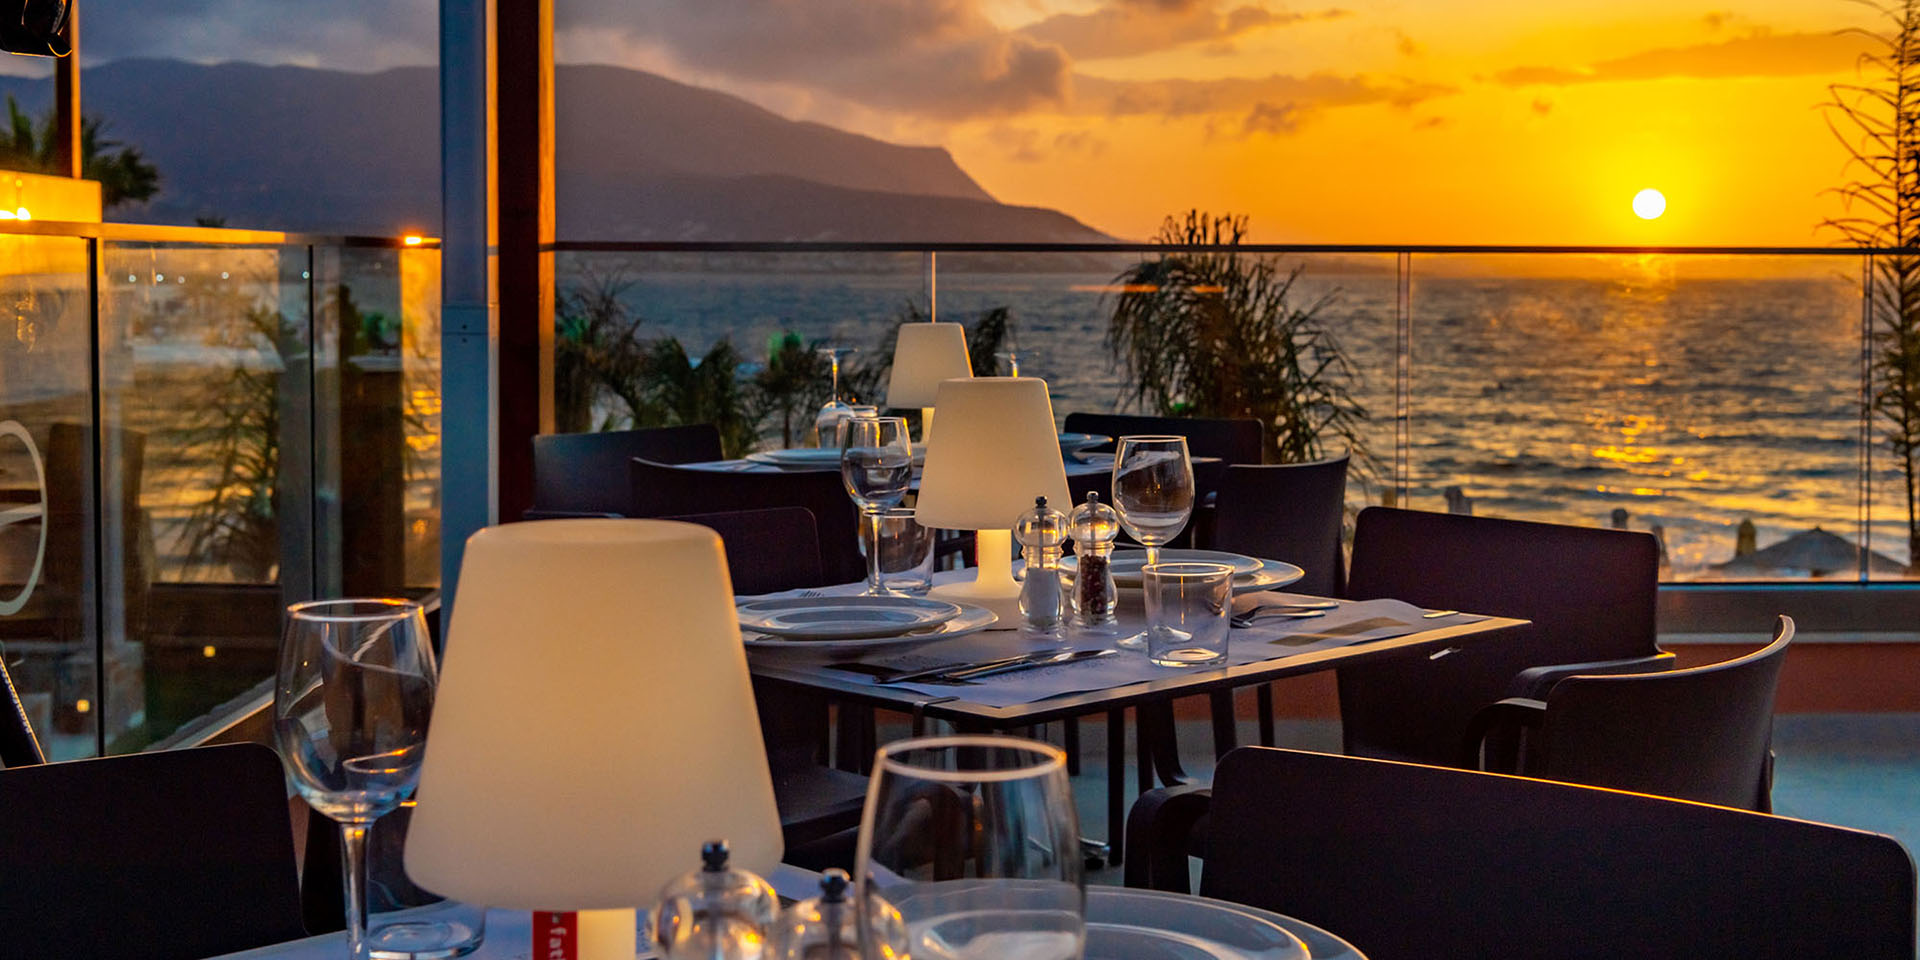 Best Place for Sunset Dinner in Crete